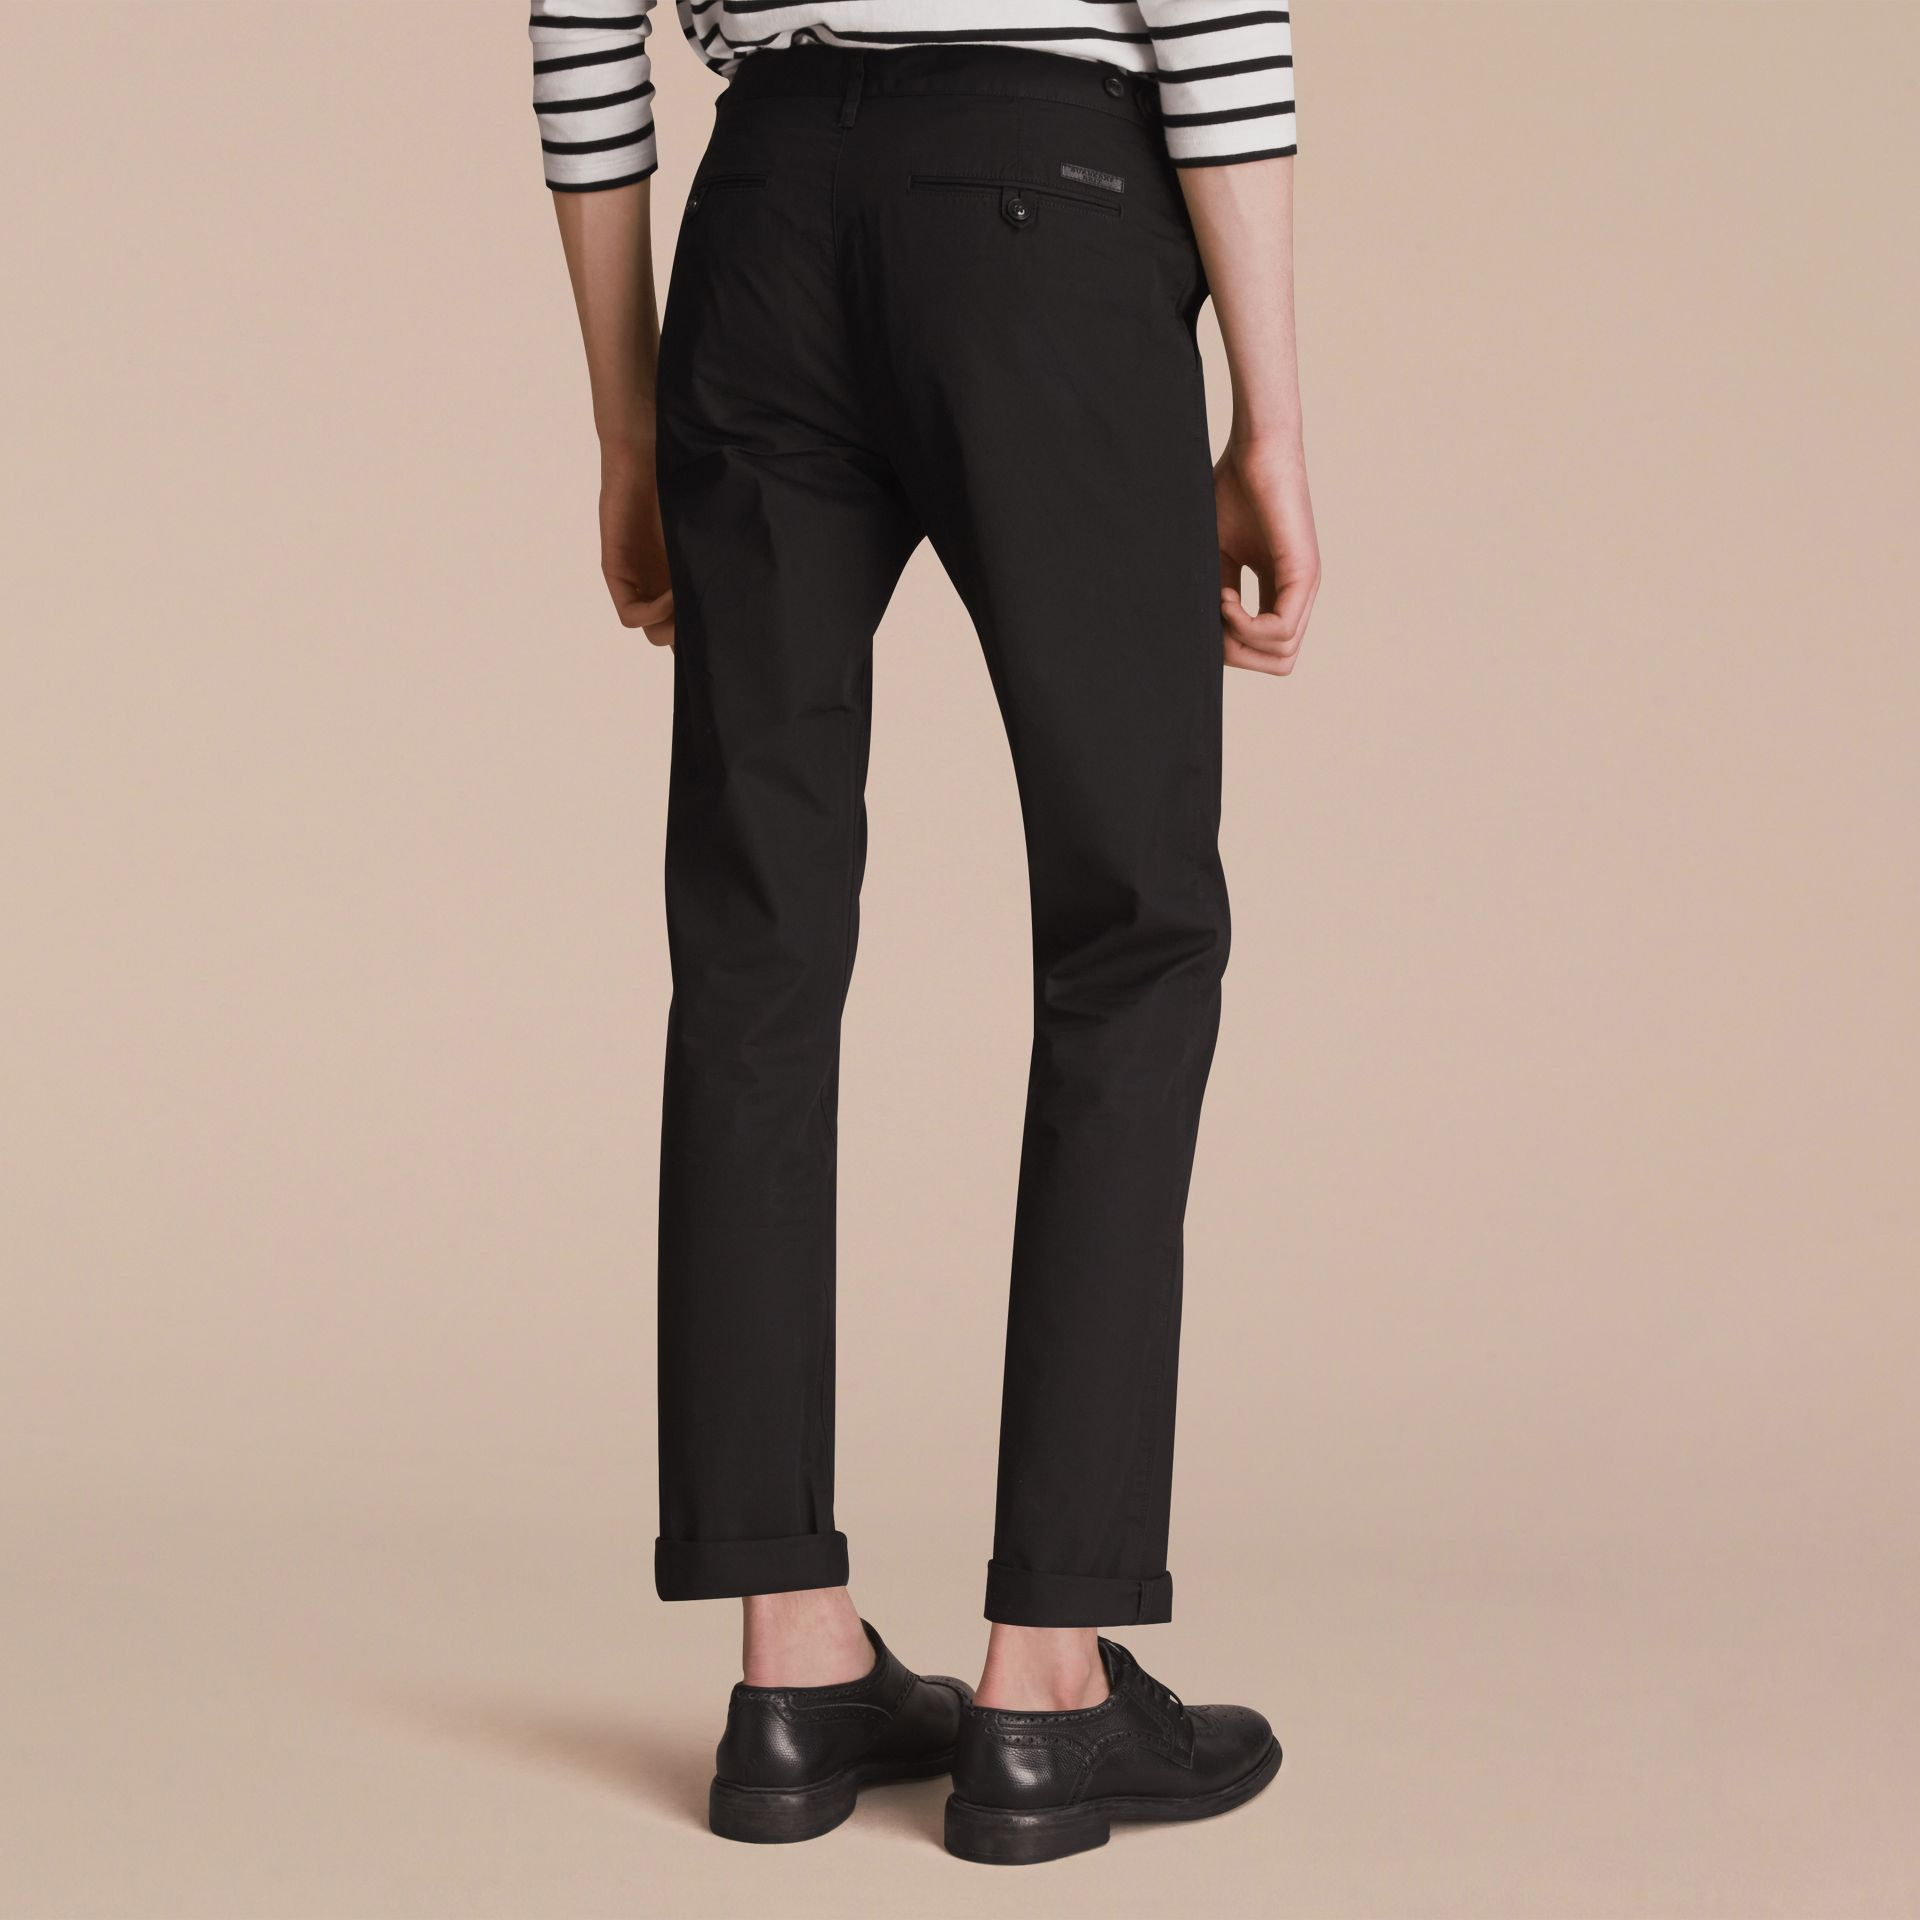 Pantalon chino de coupe droite en coton (Noir) - Homme | Burberry - photo de la galerie 3